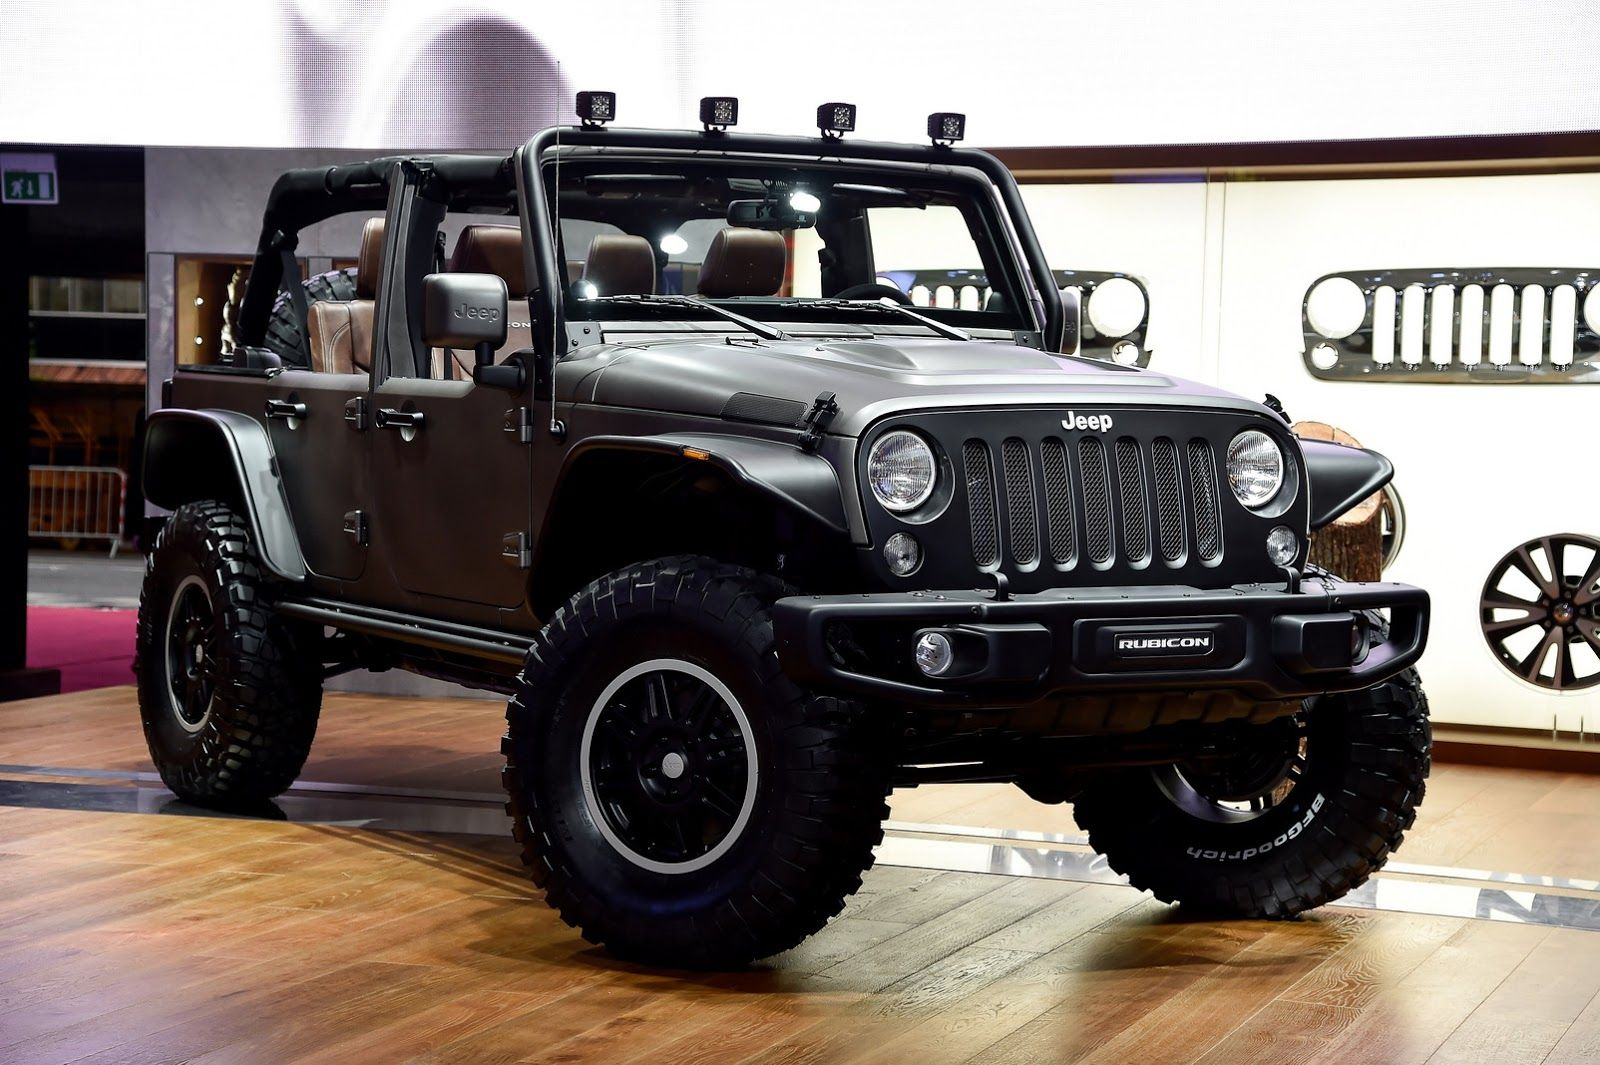 Jeeps New Wrangler Unlimited Rubicon Stealth Study And X Jeeps New Wrangler Unlimited Ru Jeep Wrangler Jeep Wrangler Unlimited Rubicon Jeep Wrangler Unlimited